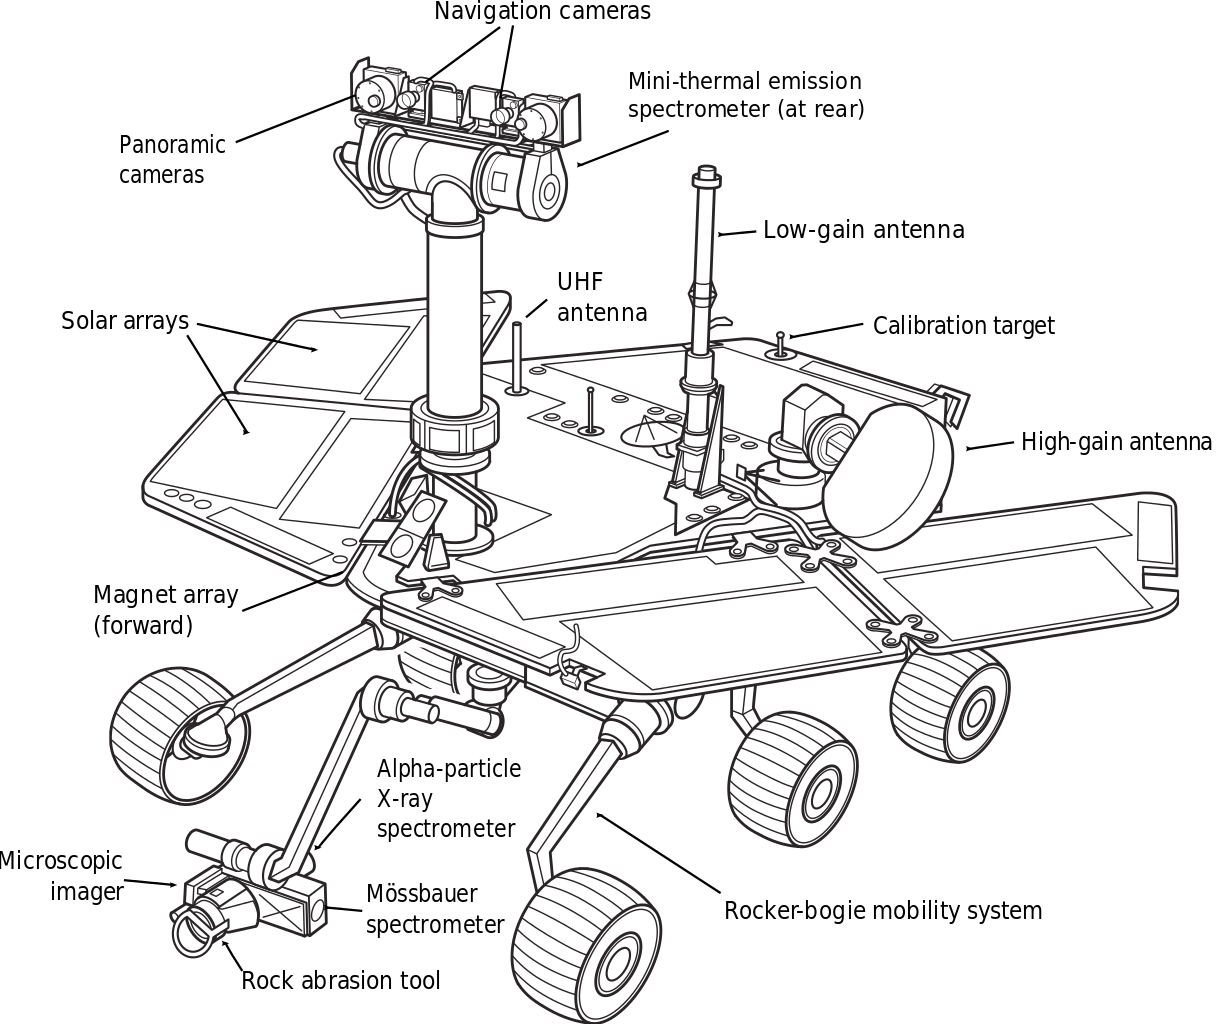 Mars Exploration Rover Diagram Planetary Probes In 2018 Engine Diagrams